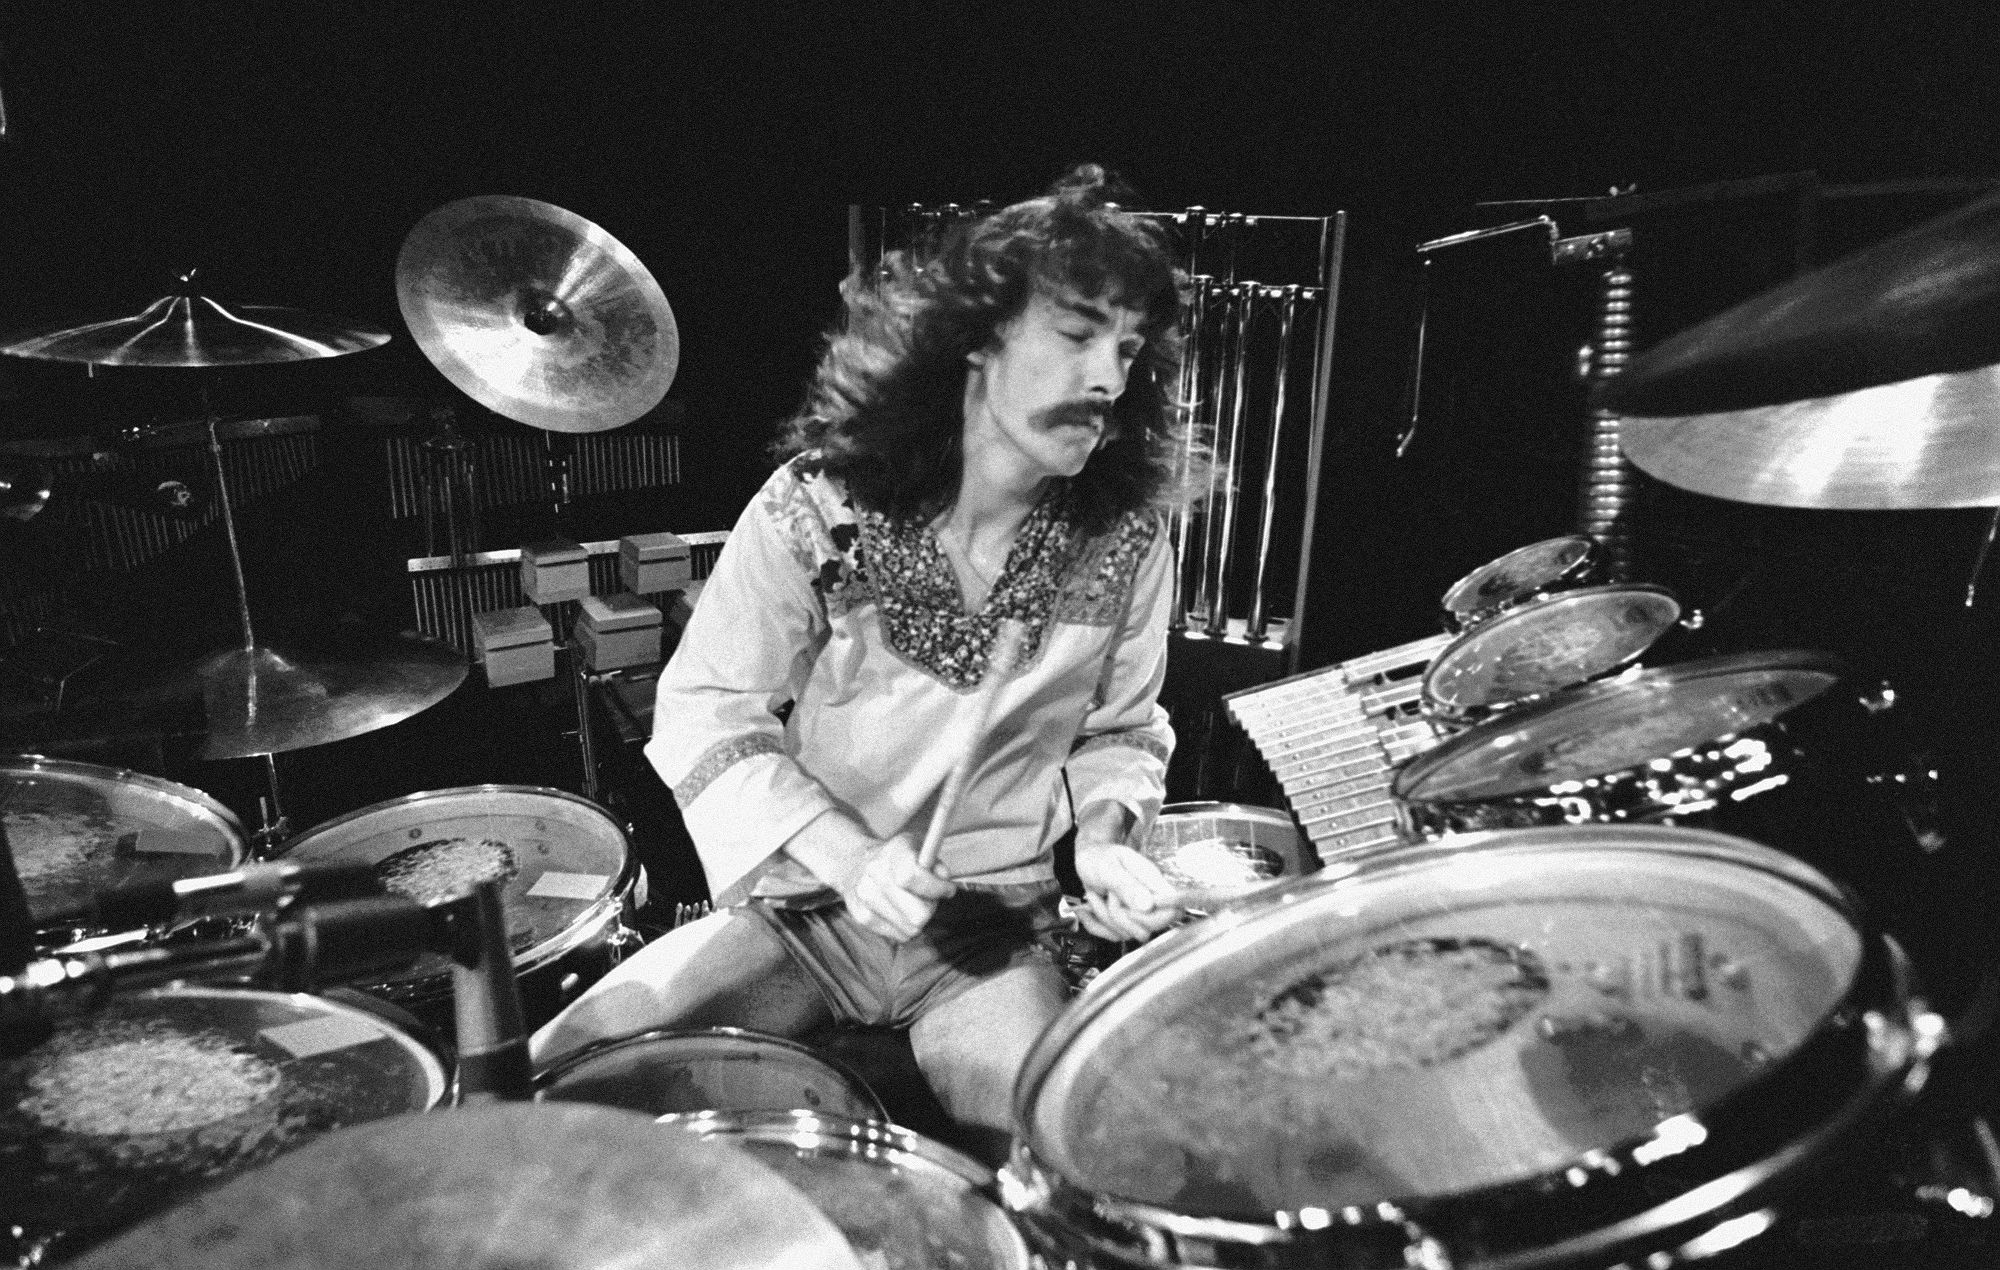 Neil Peart obituary, 1952-2020: The Professor of drums who weaved fantasy into rock | NME